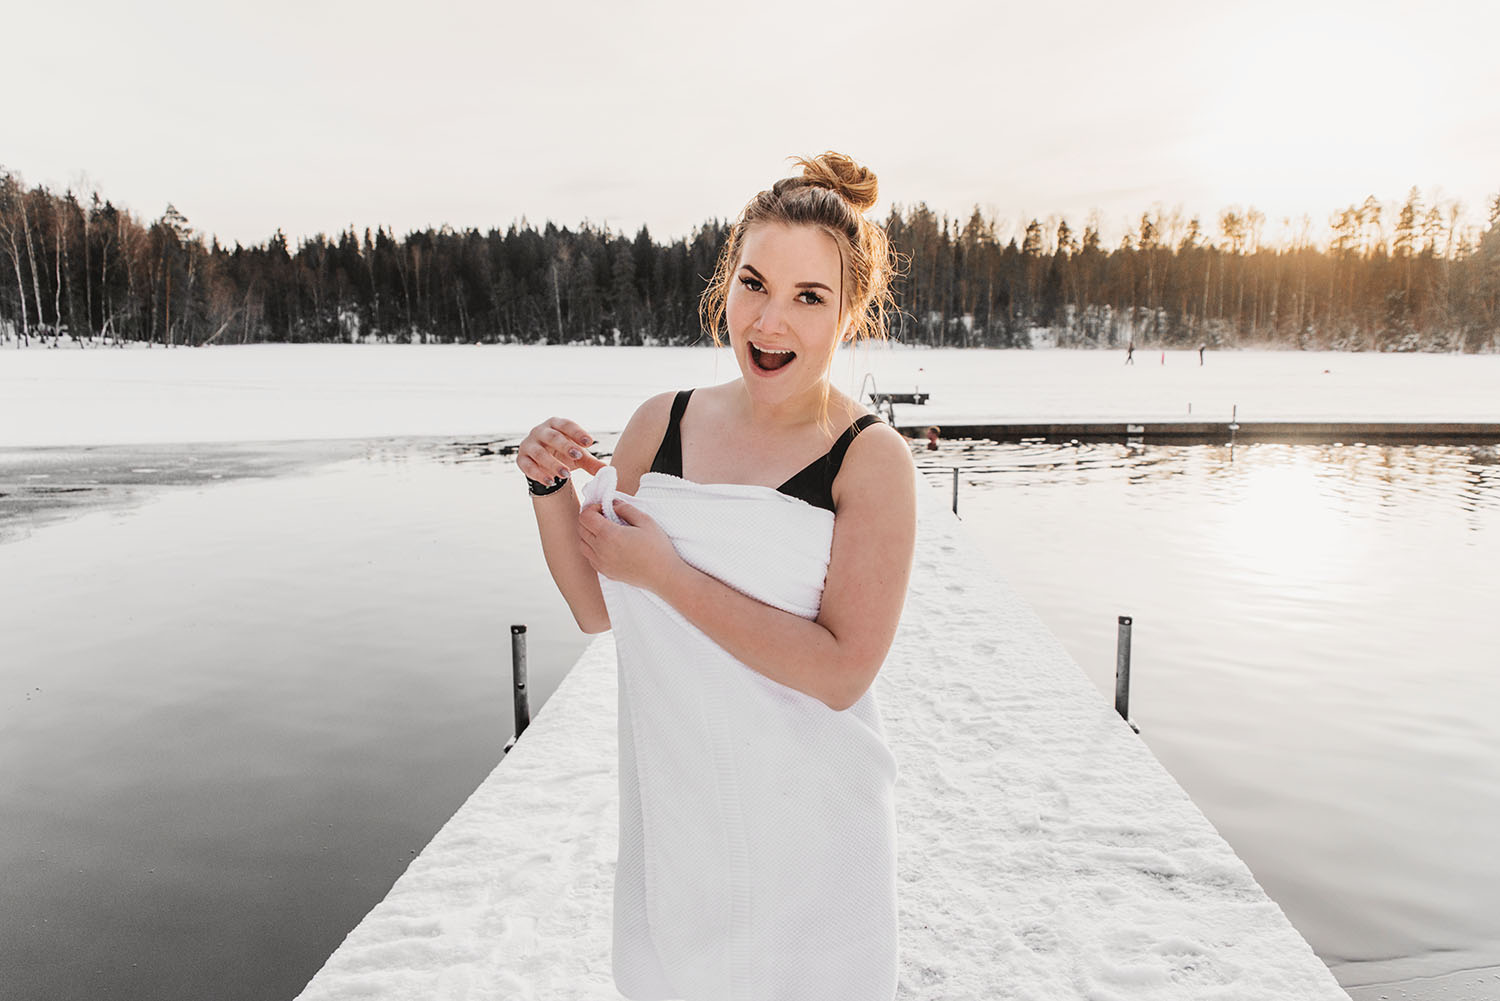 Woman after Ice Swimming at Kuusijärvi Lake in Vantaa